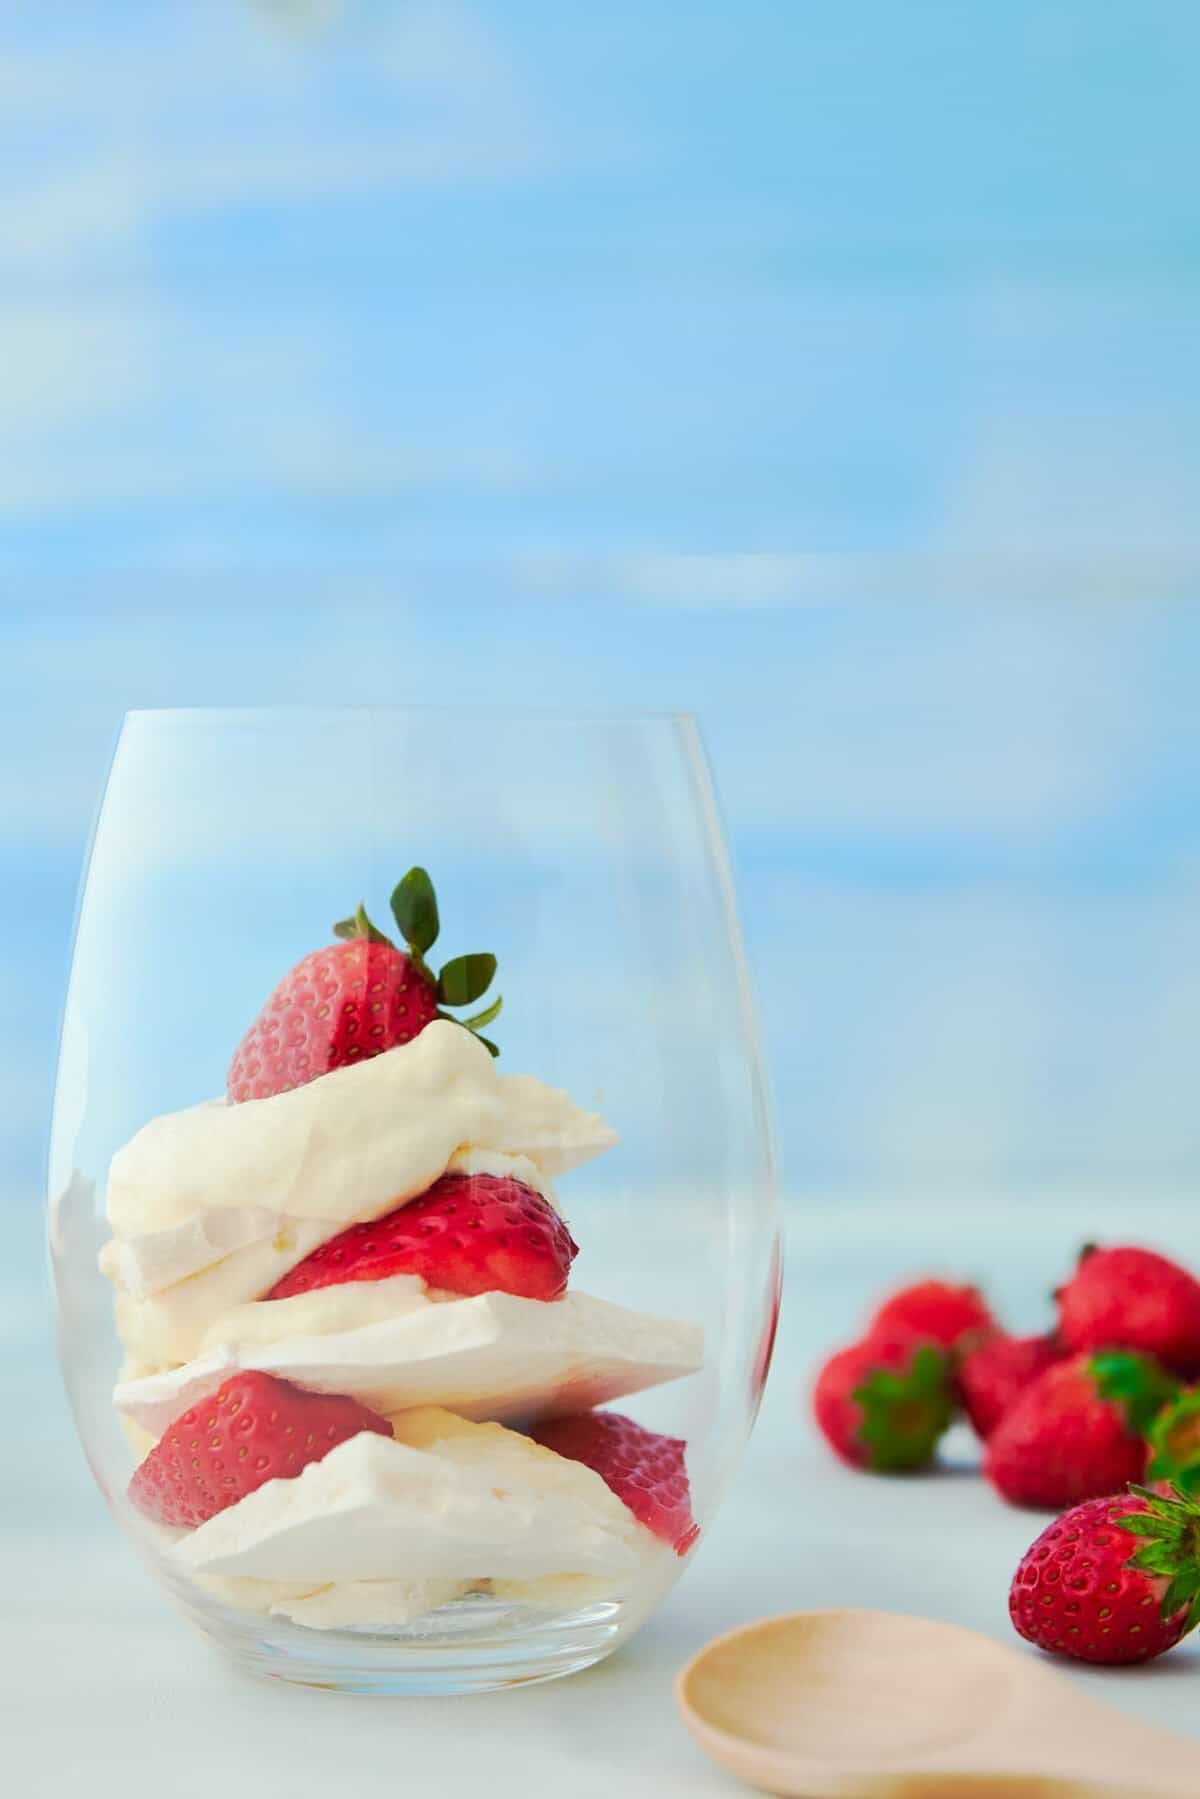 This Eton Mess recipe is a scrumptions British dessert made with layers of white chocolate cream, crisp meringue and strawberries.